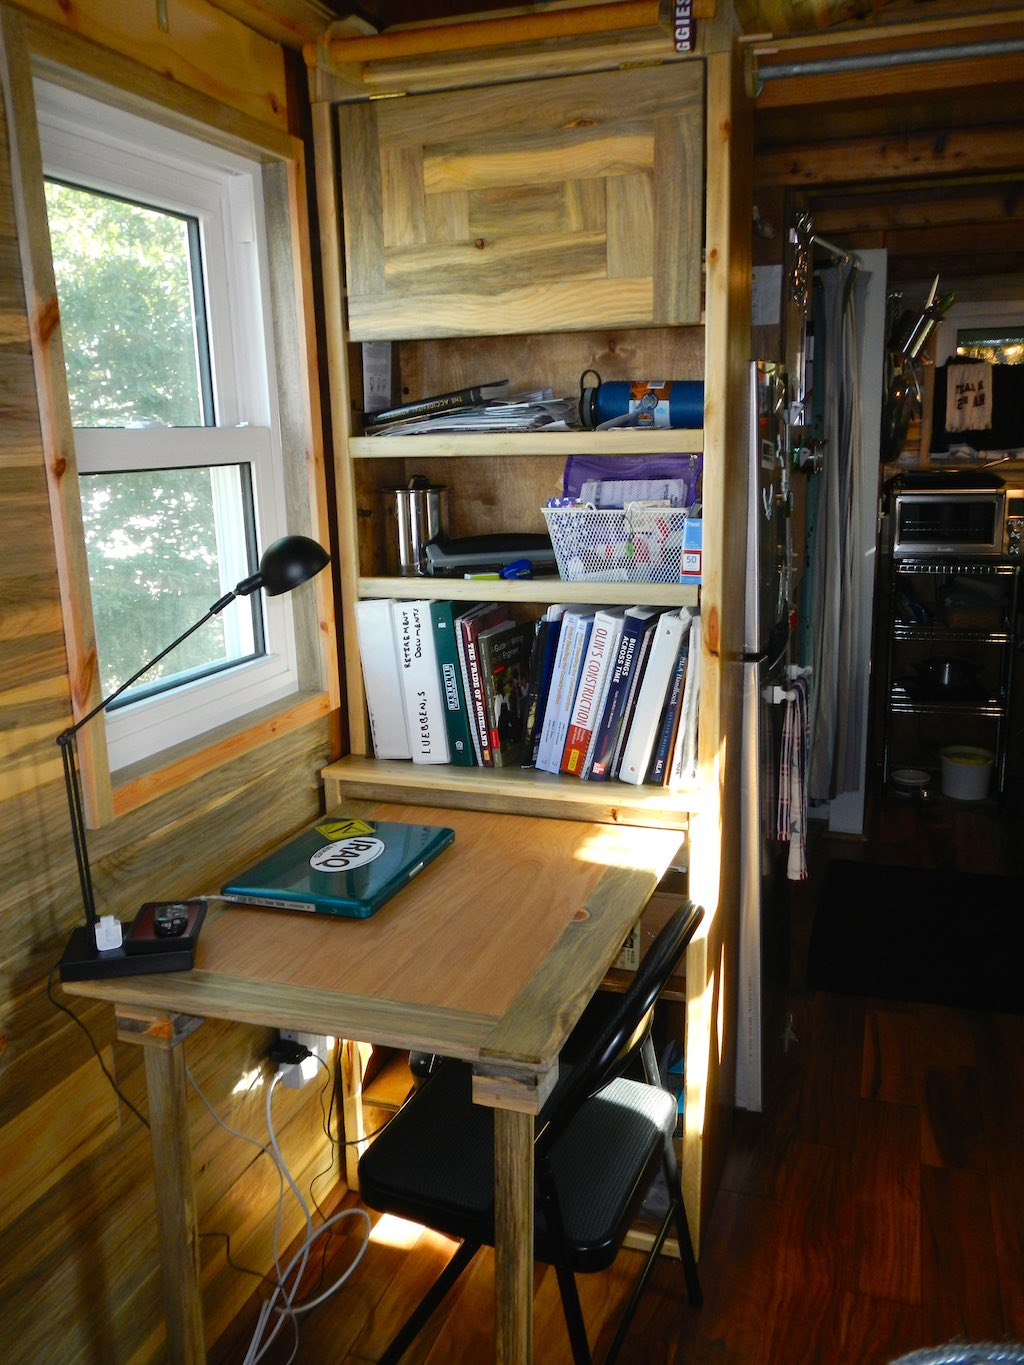 stephanis-tiny-house-college-student-5